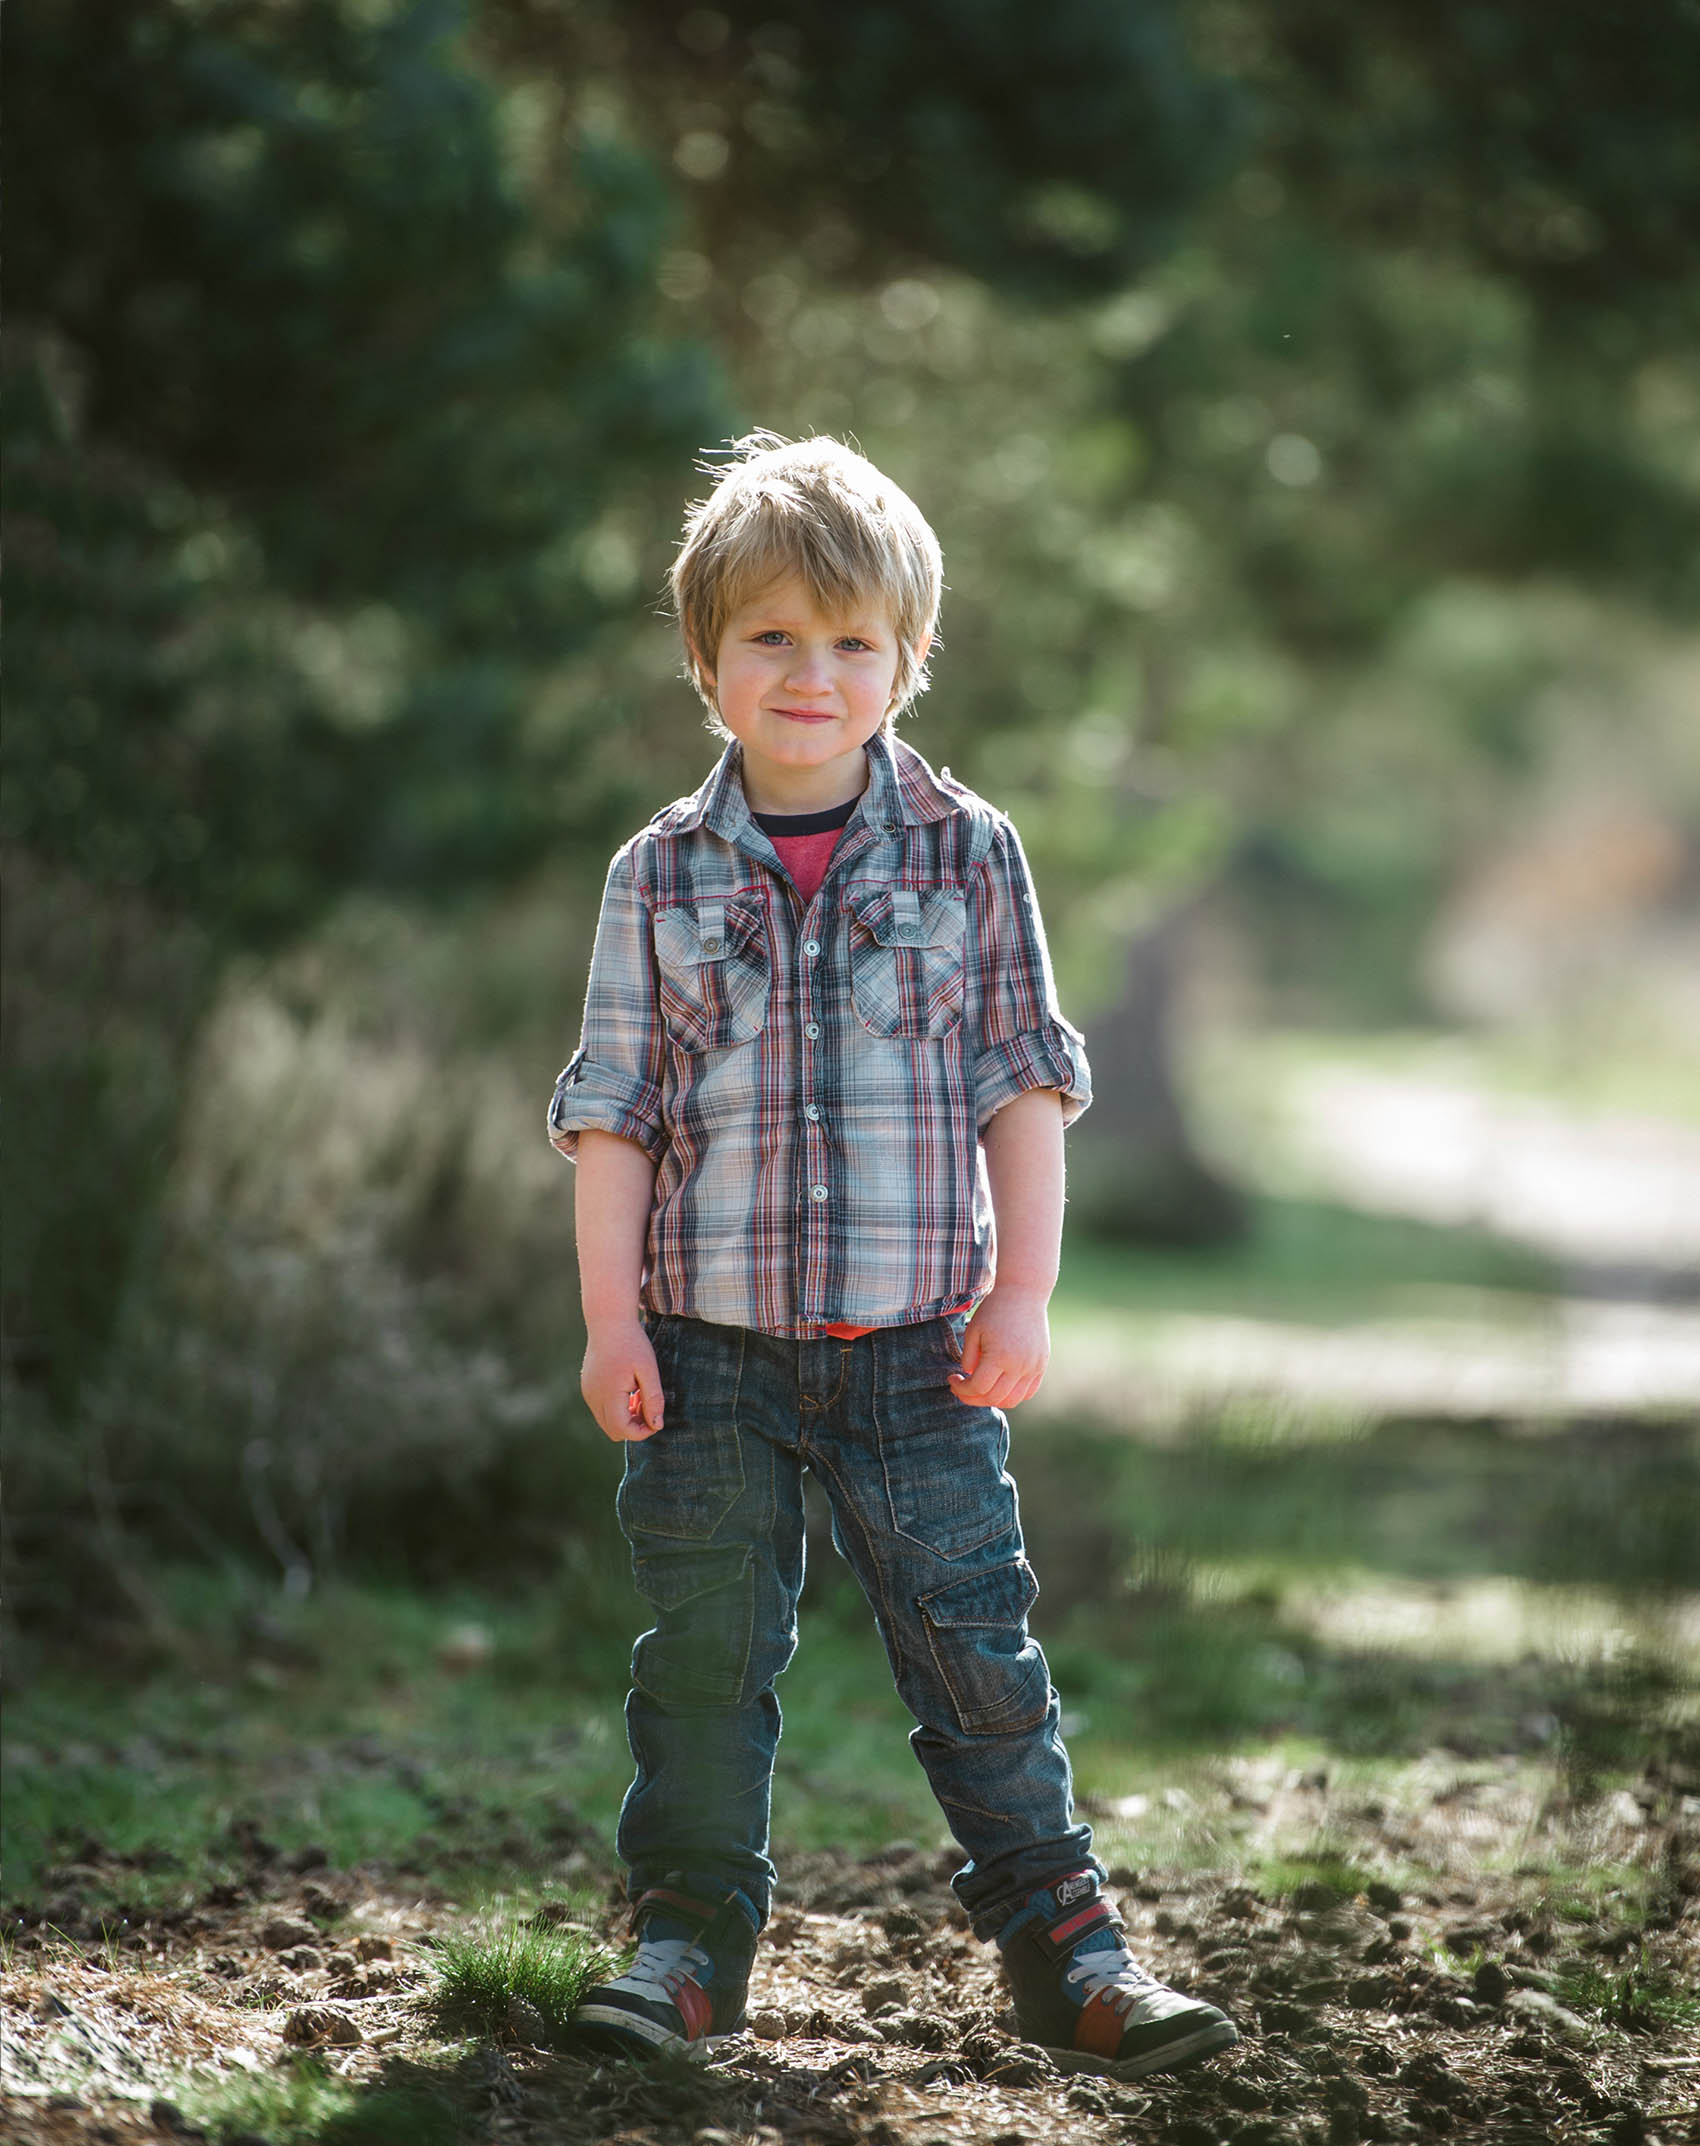 doncaster children family photographer004.jpg